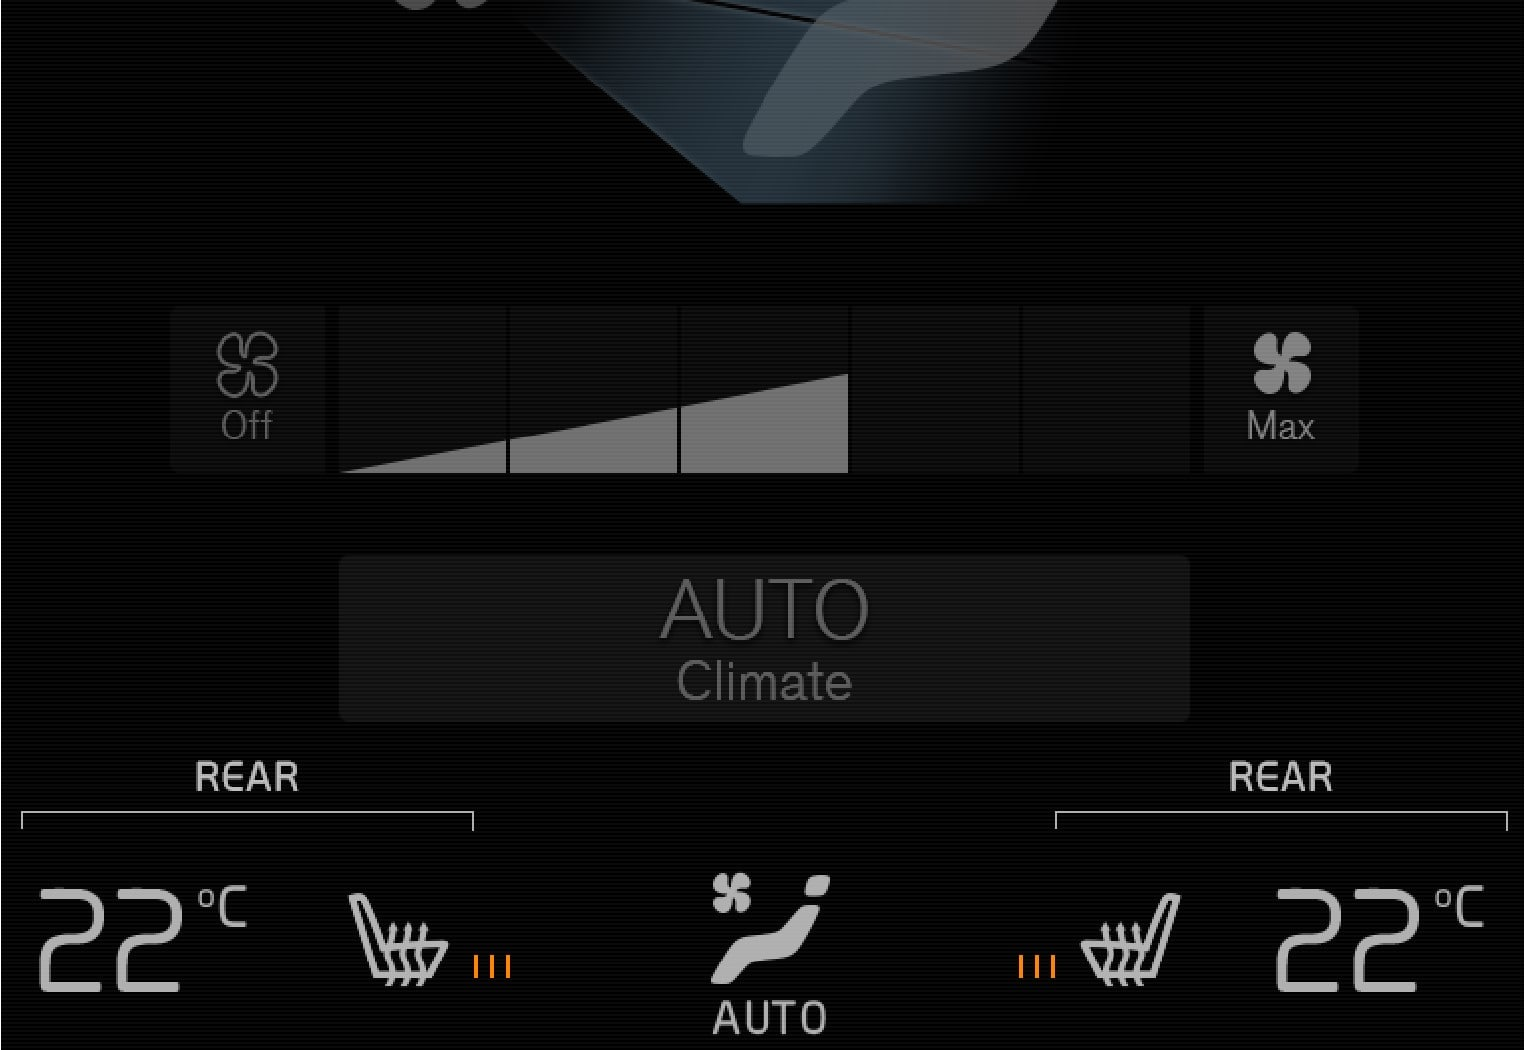 Buttons for heated seats in the group Rear climate in the climate view.